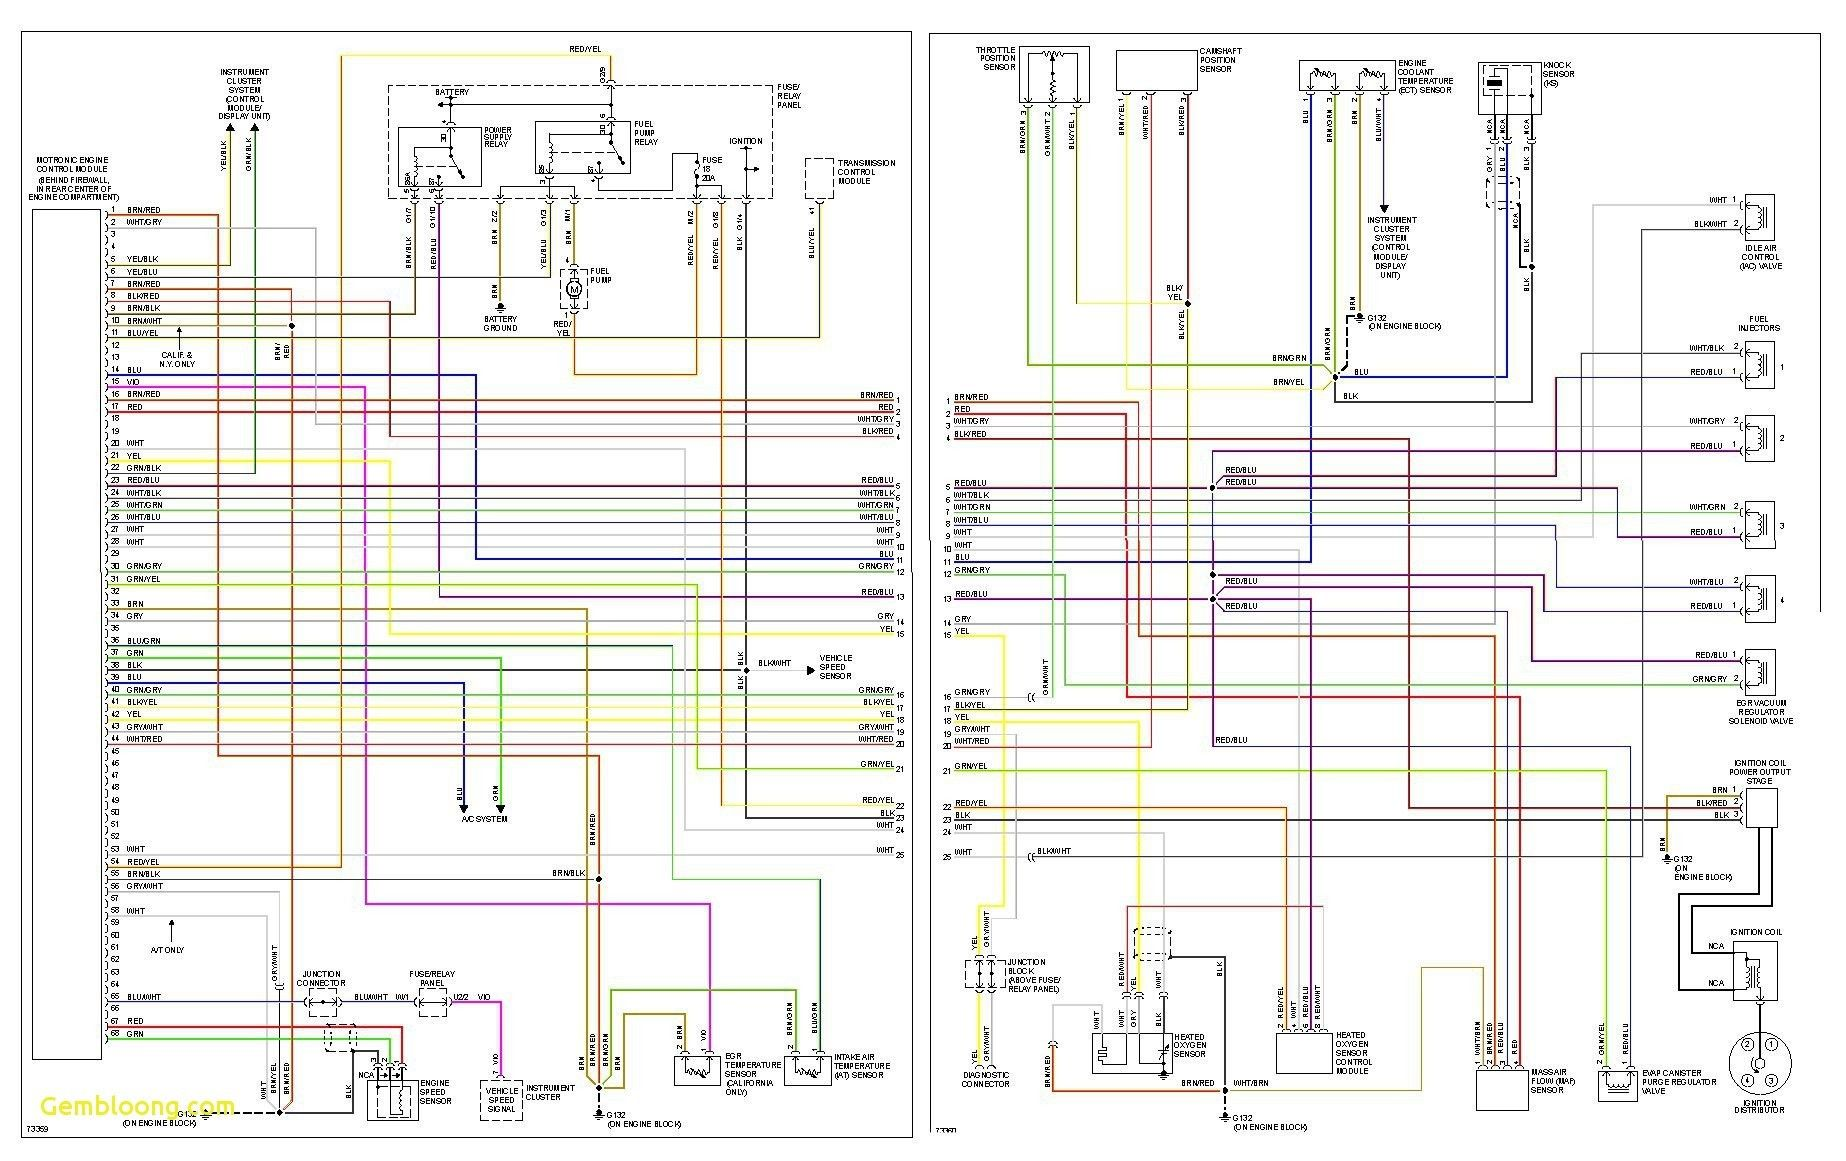 Unique Vw Golf Mk5 Headlight Wiring Diagram Diagram Diagramsample Diagramtemplate Wiringdiagram Diagramchart Worksheet Workshe Vr6 Engine Vw Up Vw Jetta